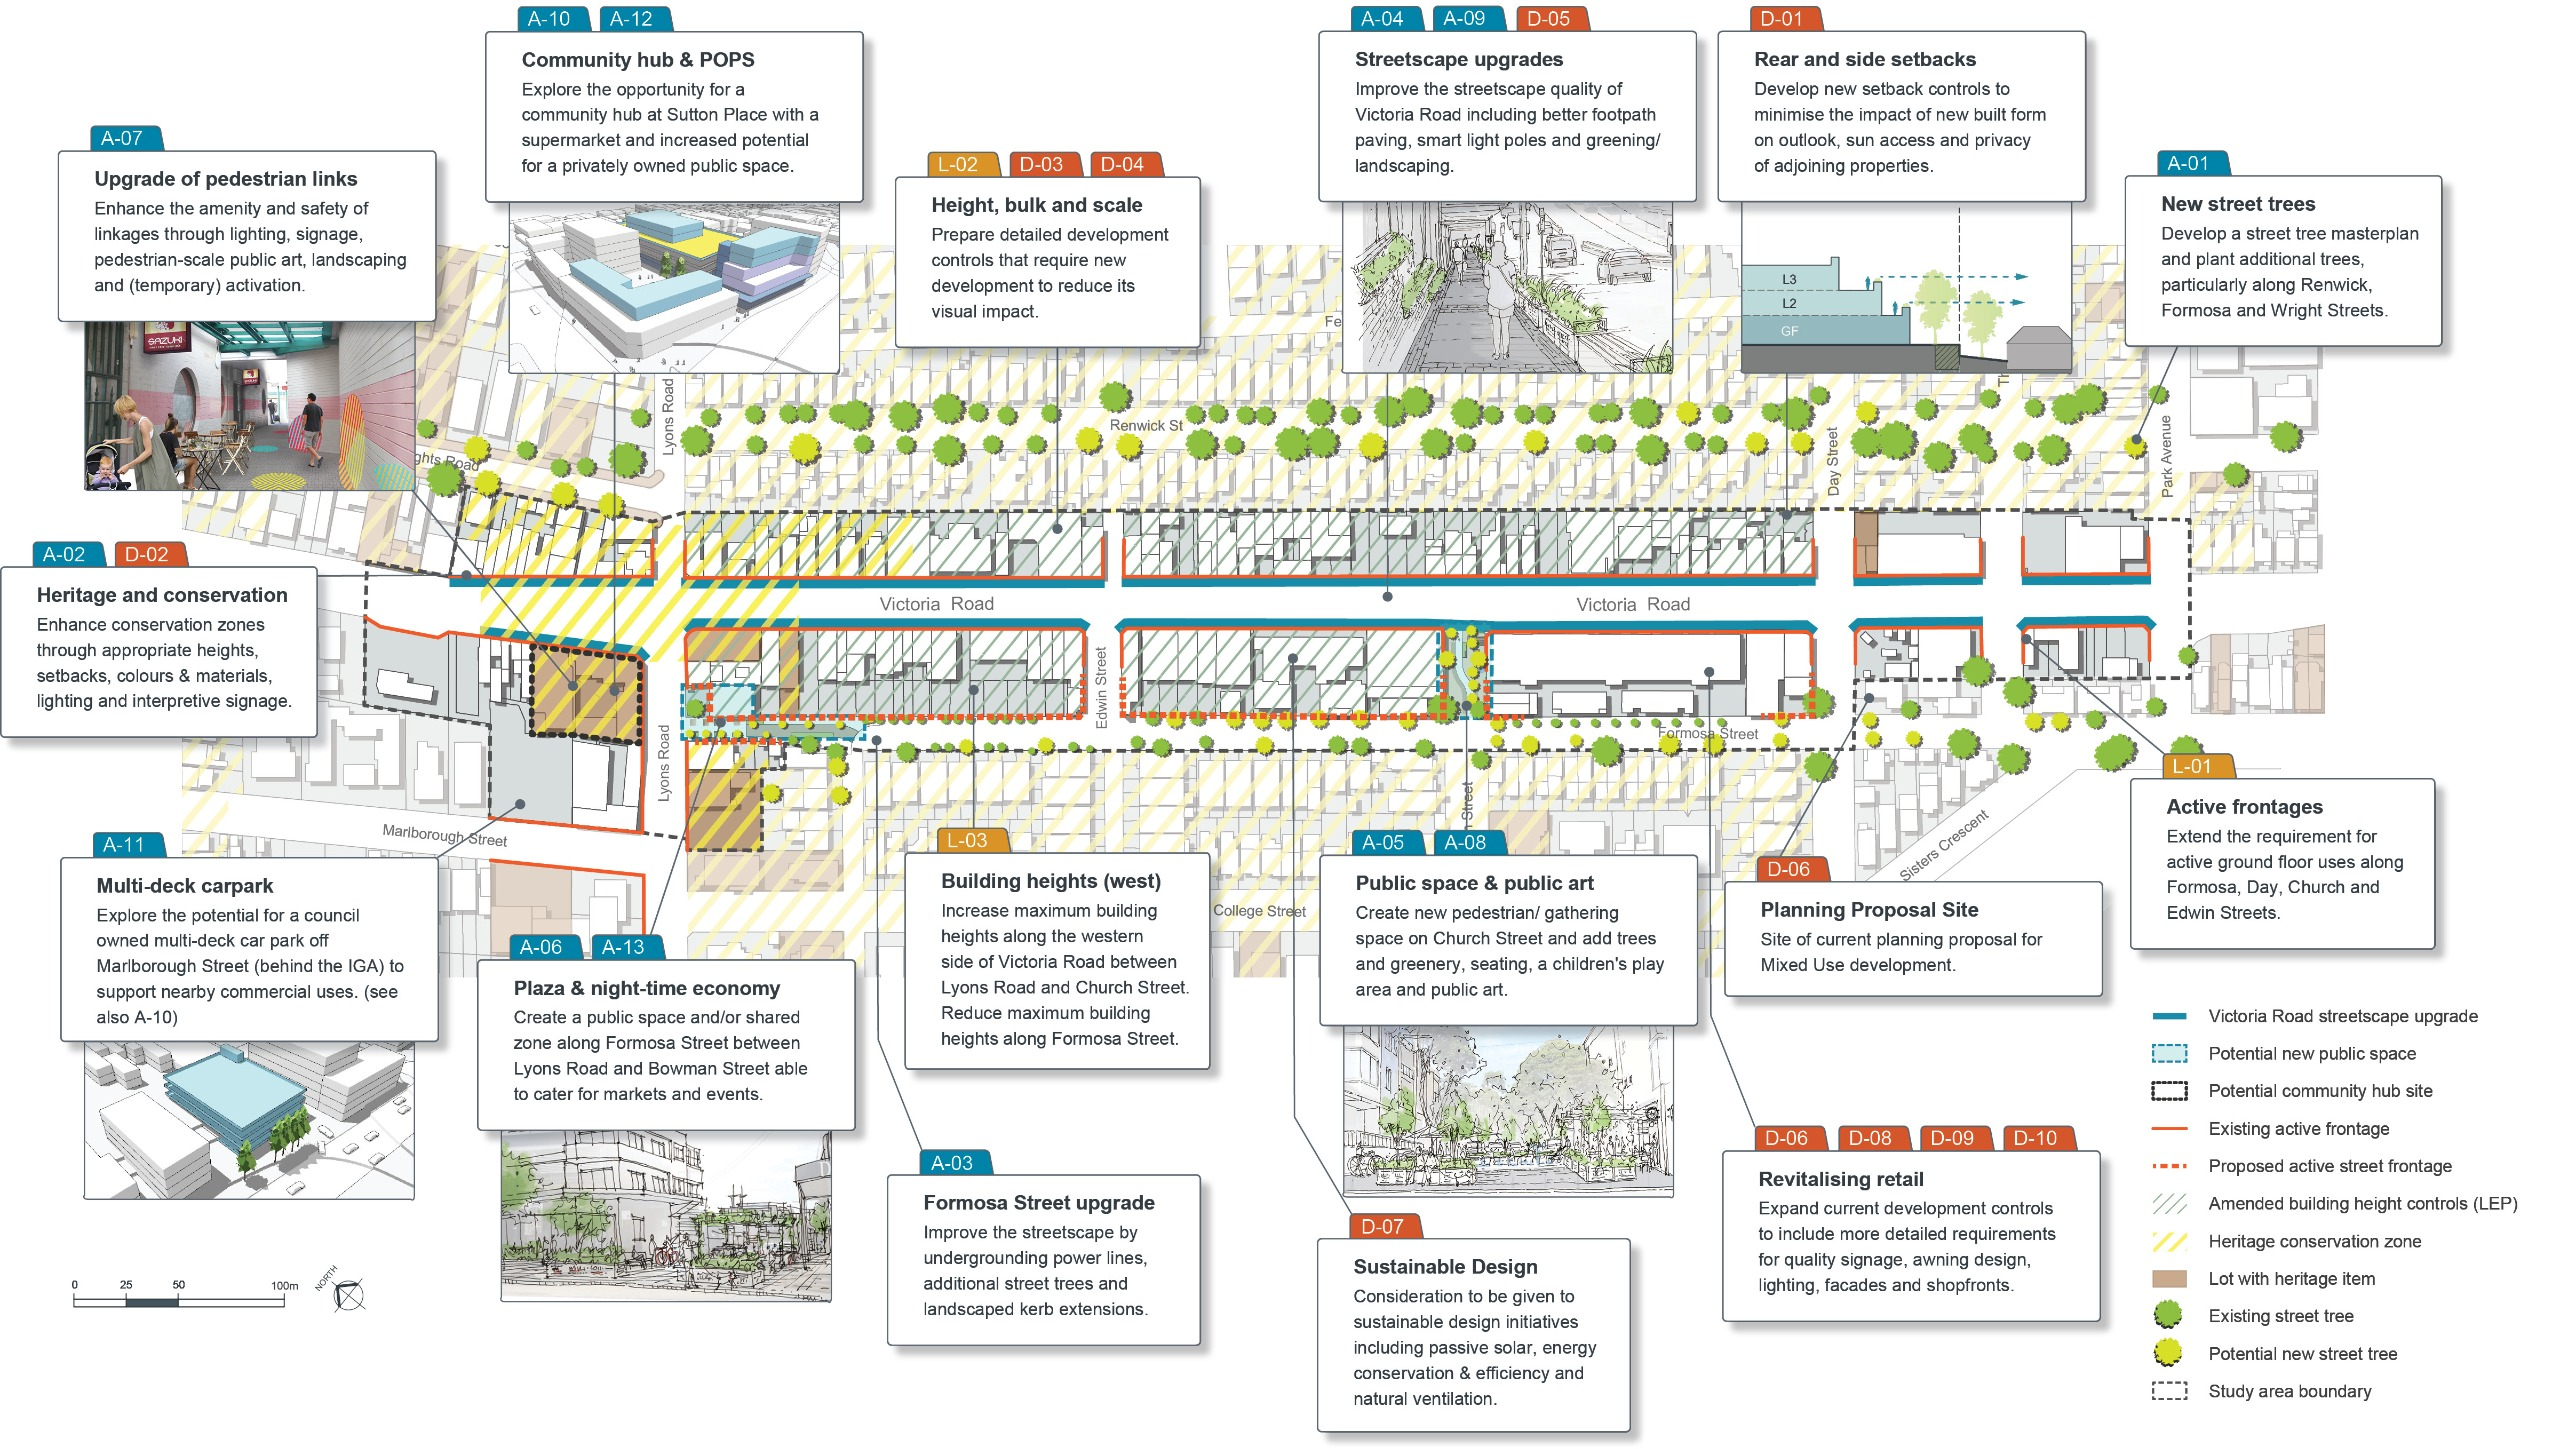 Key initiatives in the Victoria Road Urban Design Review